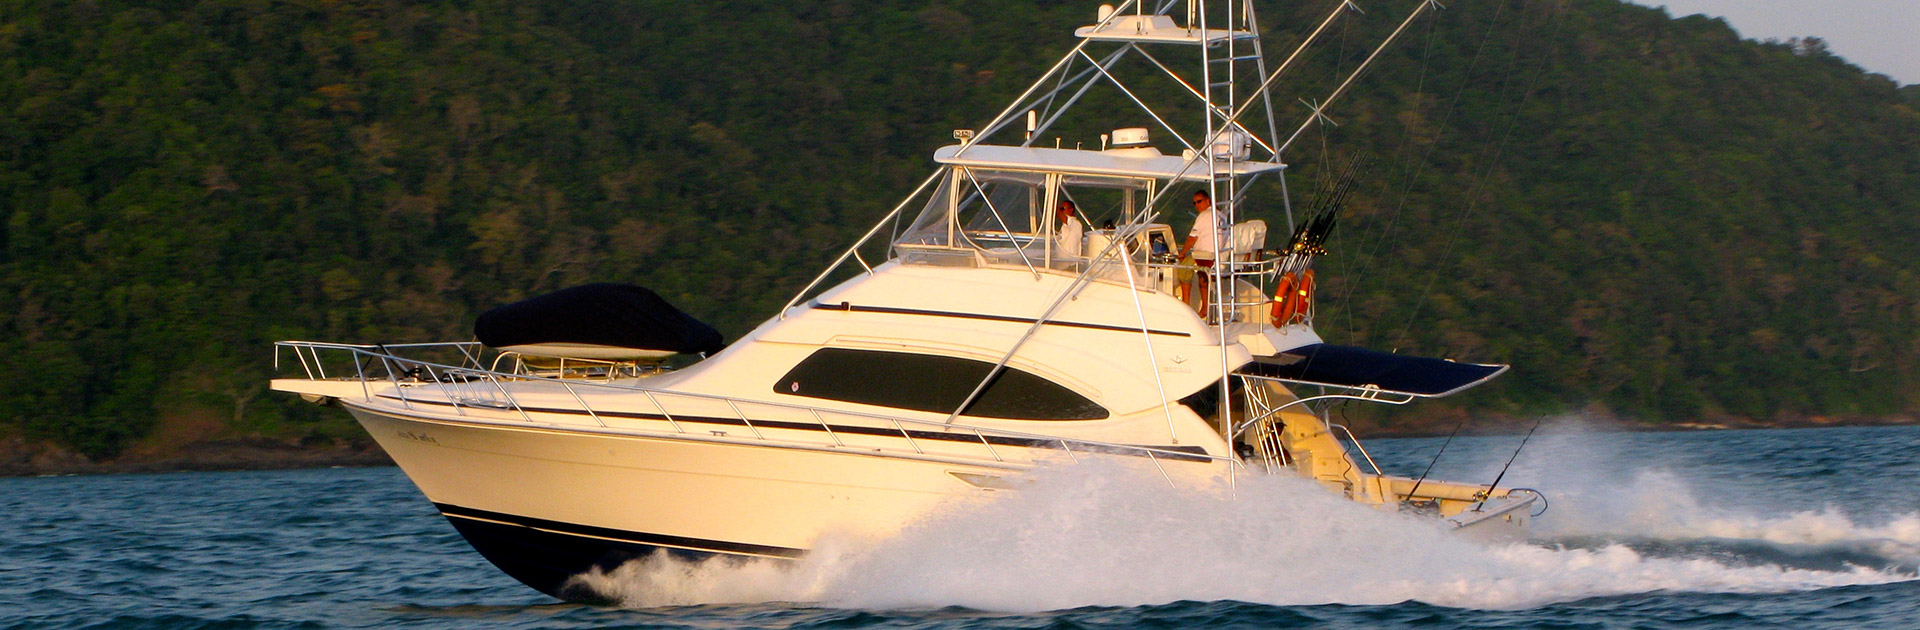 Burma sport fishing charters luxury sport fishing charters for Sport fishing charters